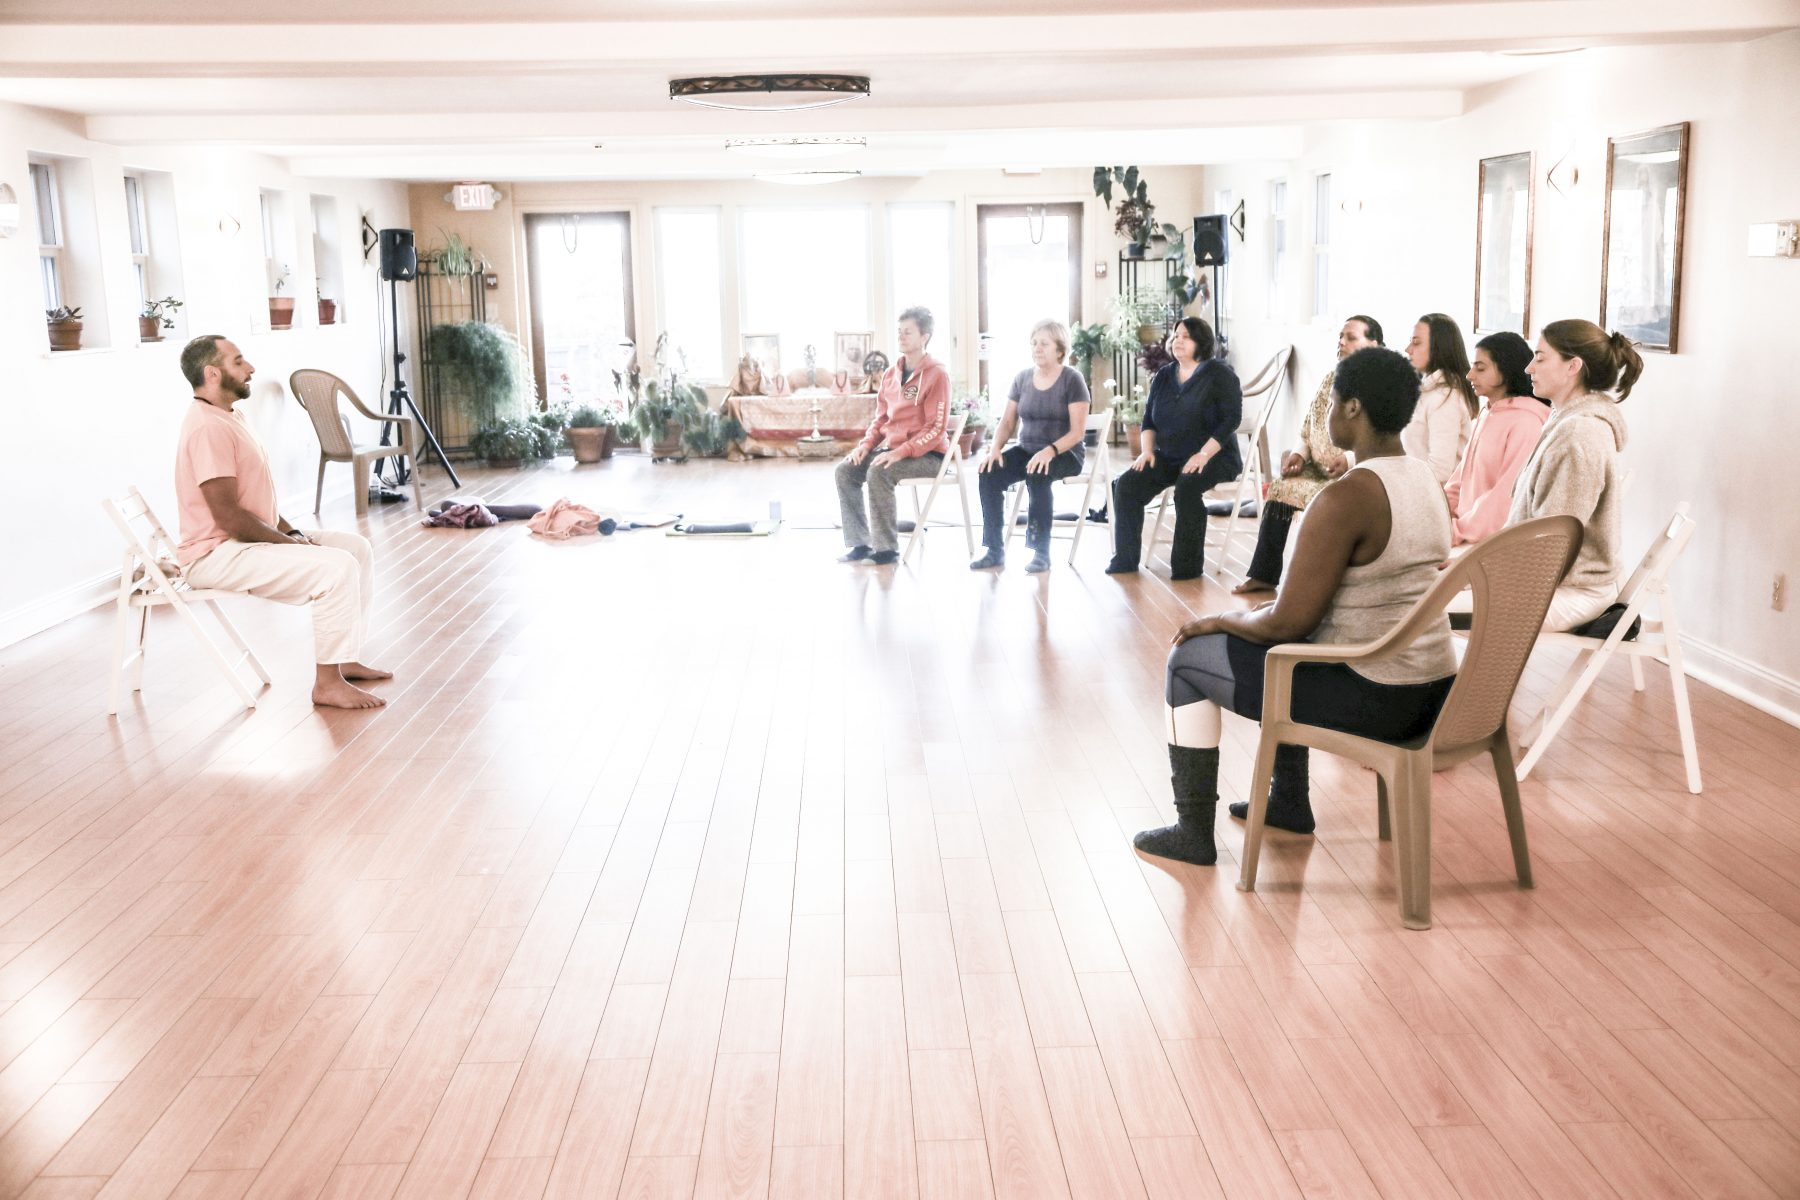 Chair Yoga Training: Learn to Teach Seniors & Those with Limited Mobility at the Sivananda Yoga Ranch